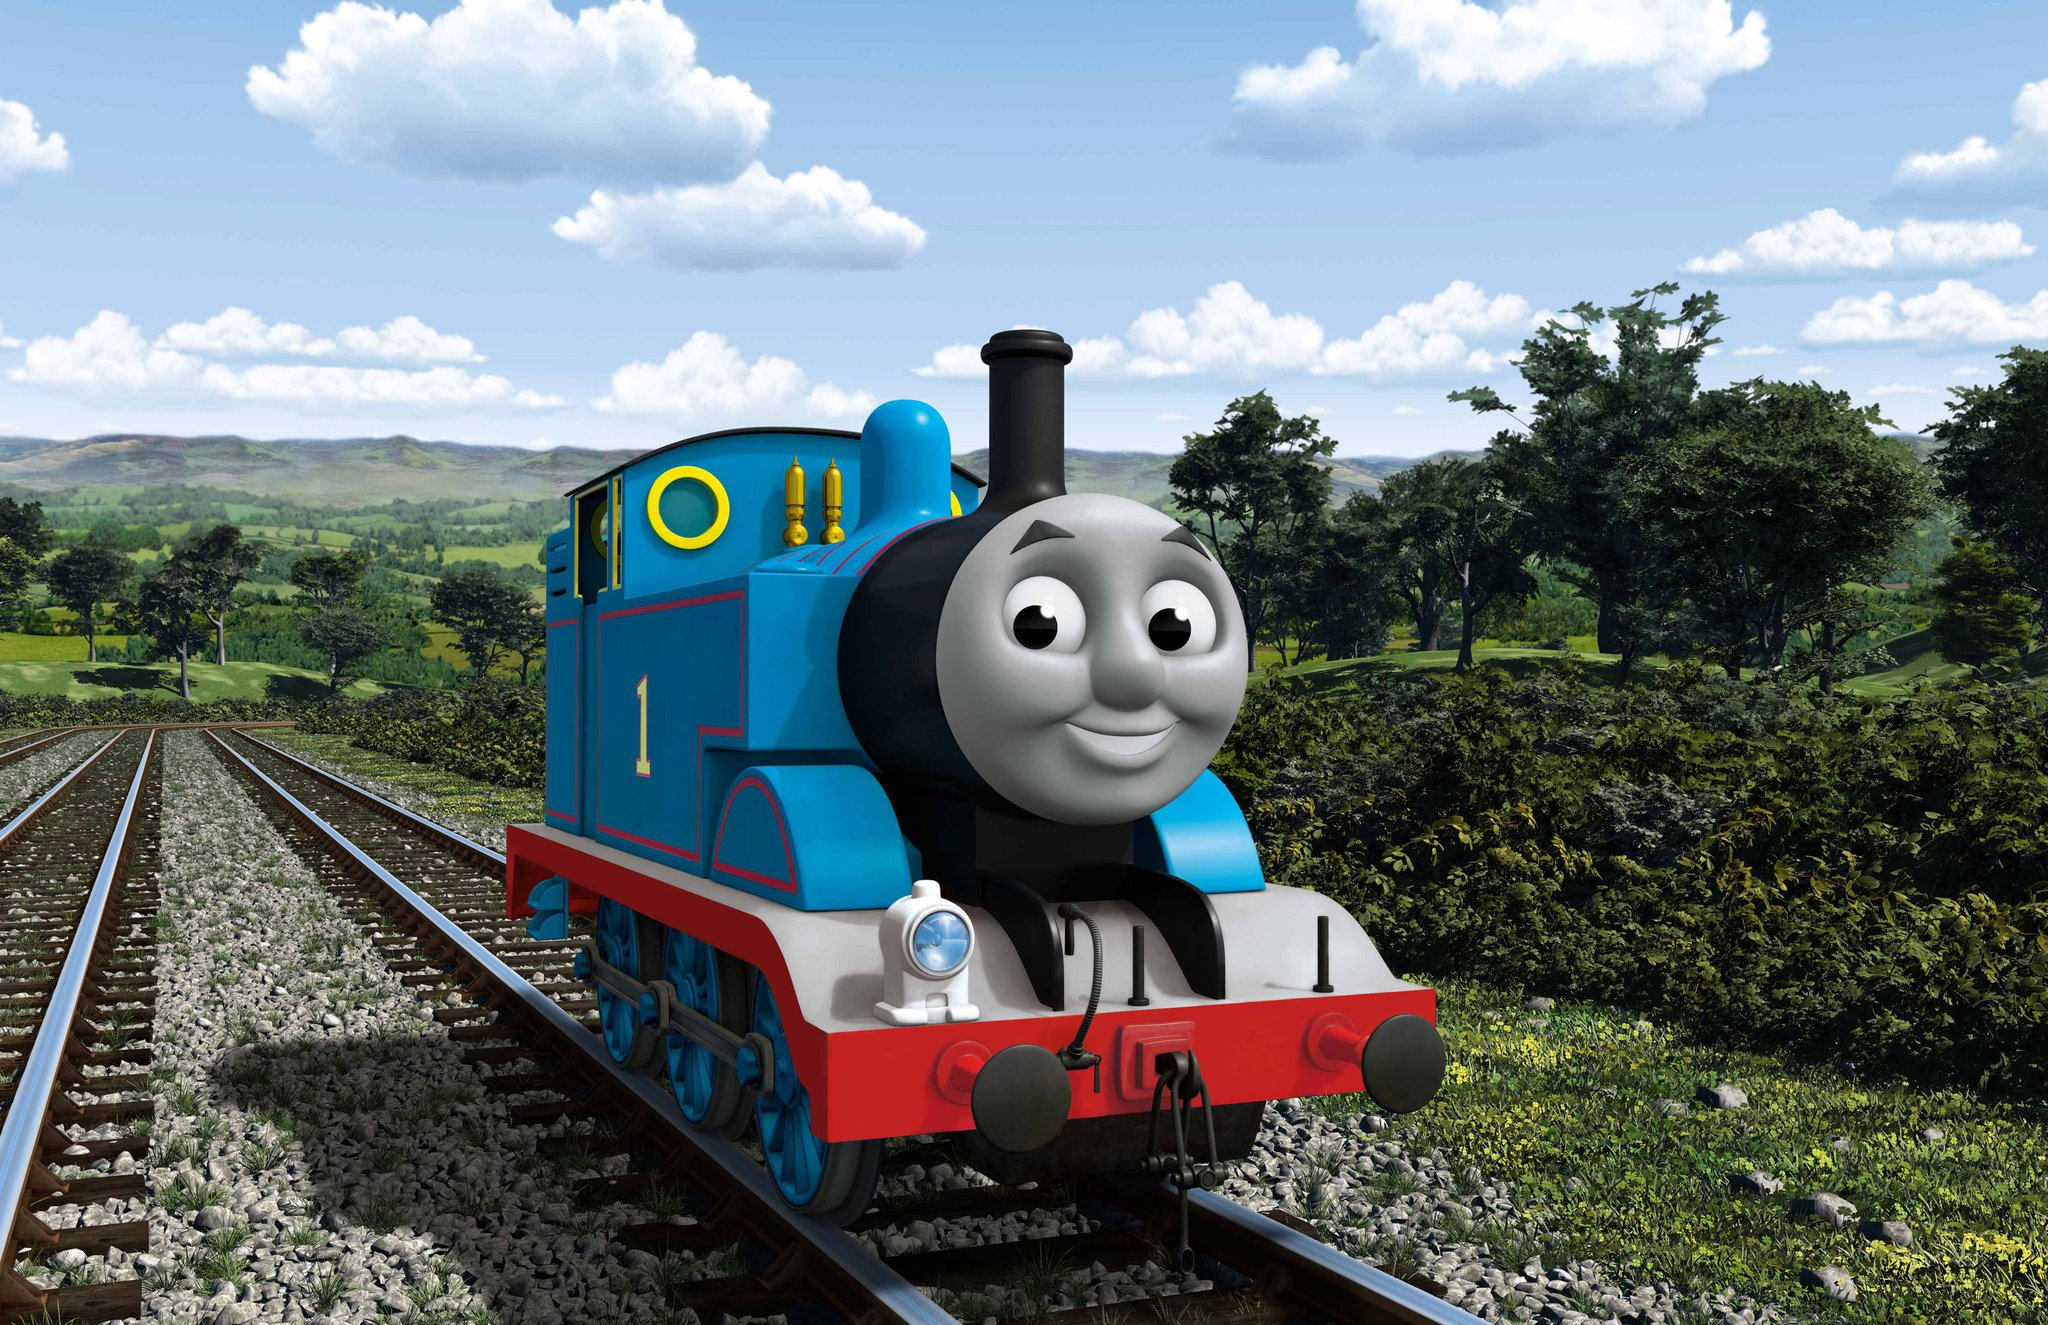 Thomas thomas the tank engine and friends the cgi - Background thomas and friends ...